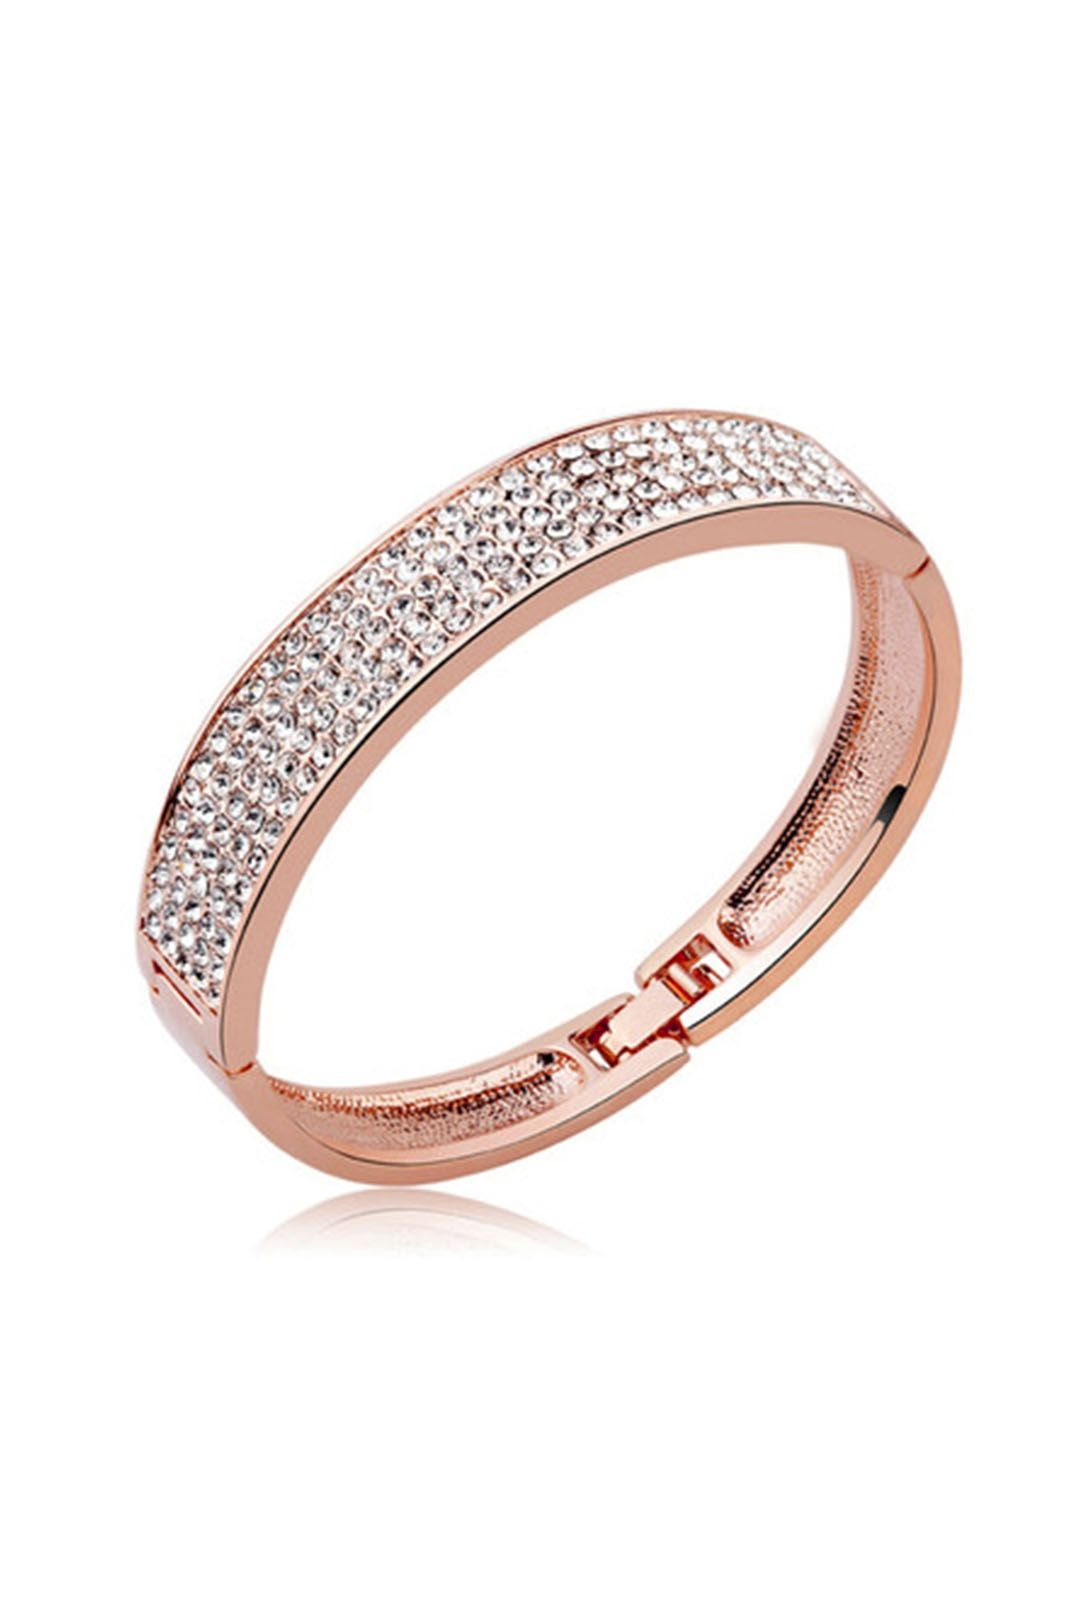 Krystal Couture - Classic Bangle - Rose Gold - Side